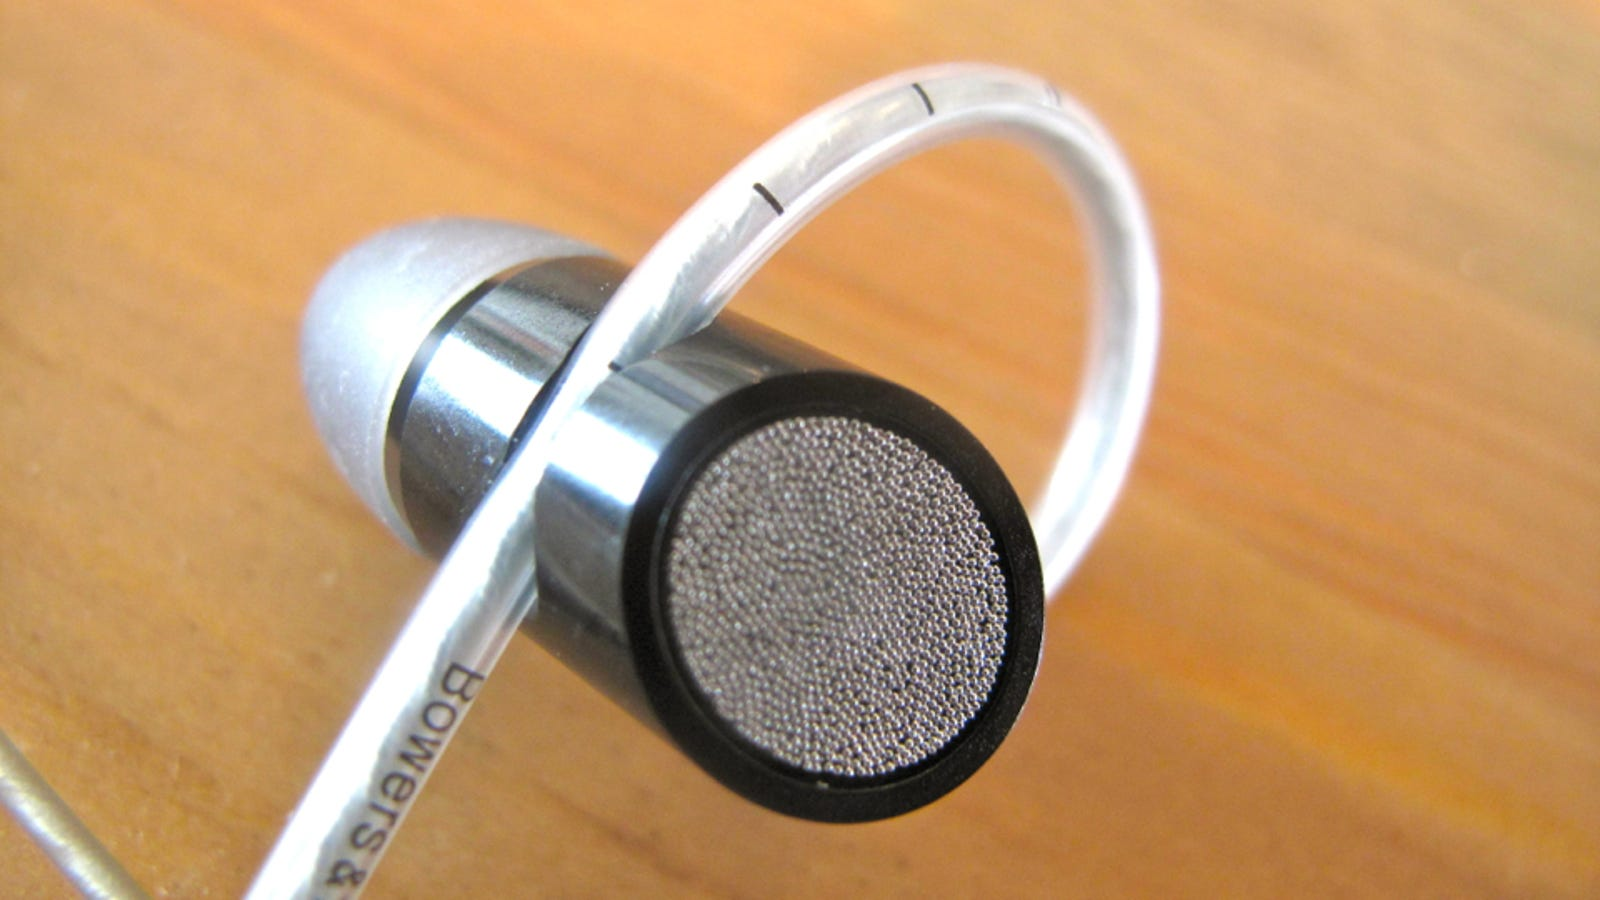 Bowers & Wilkins C5 In-Ear Headphones Lightning Review: Massive Sound, Tiny Buds